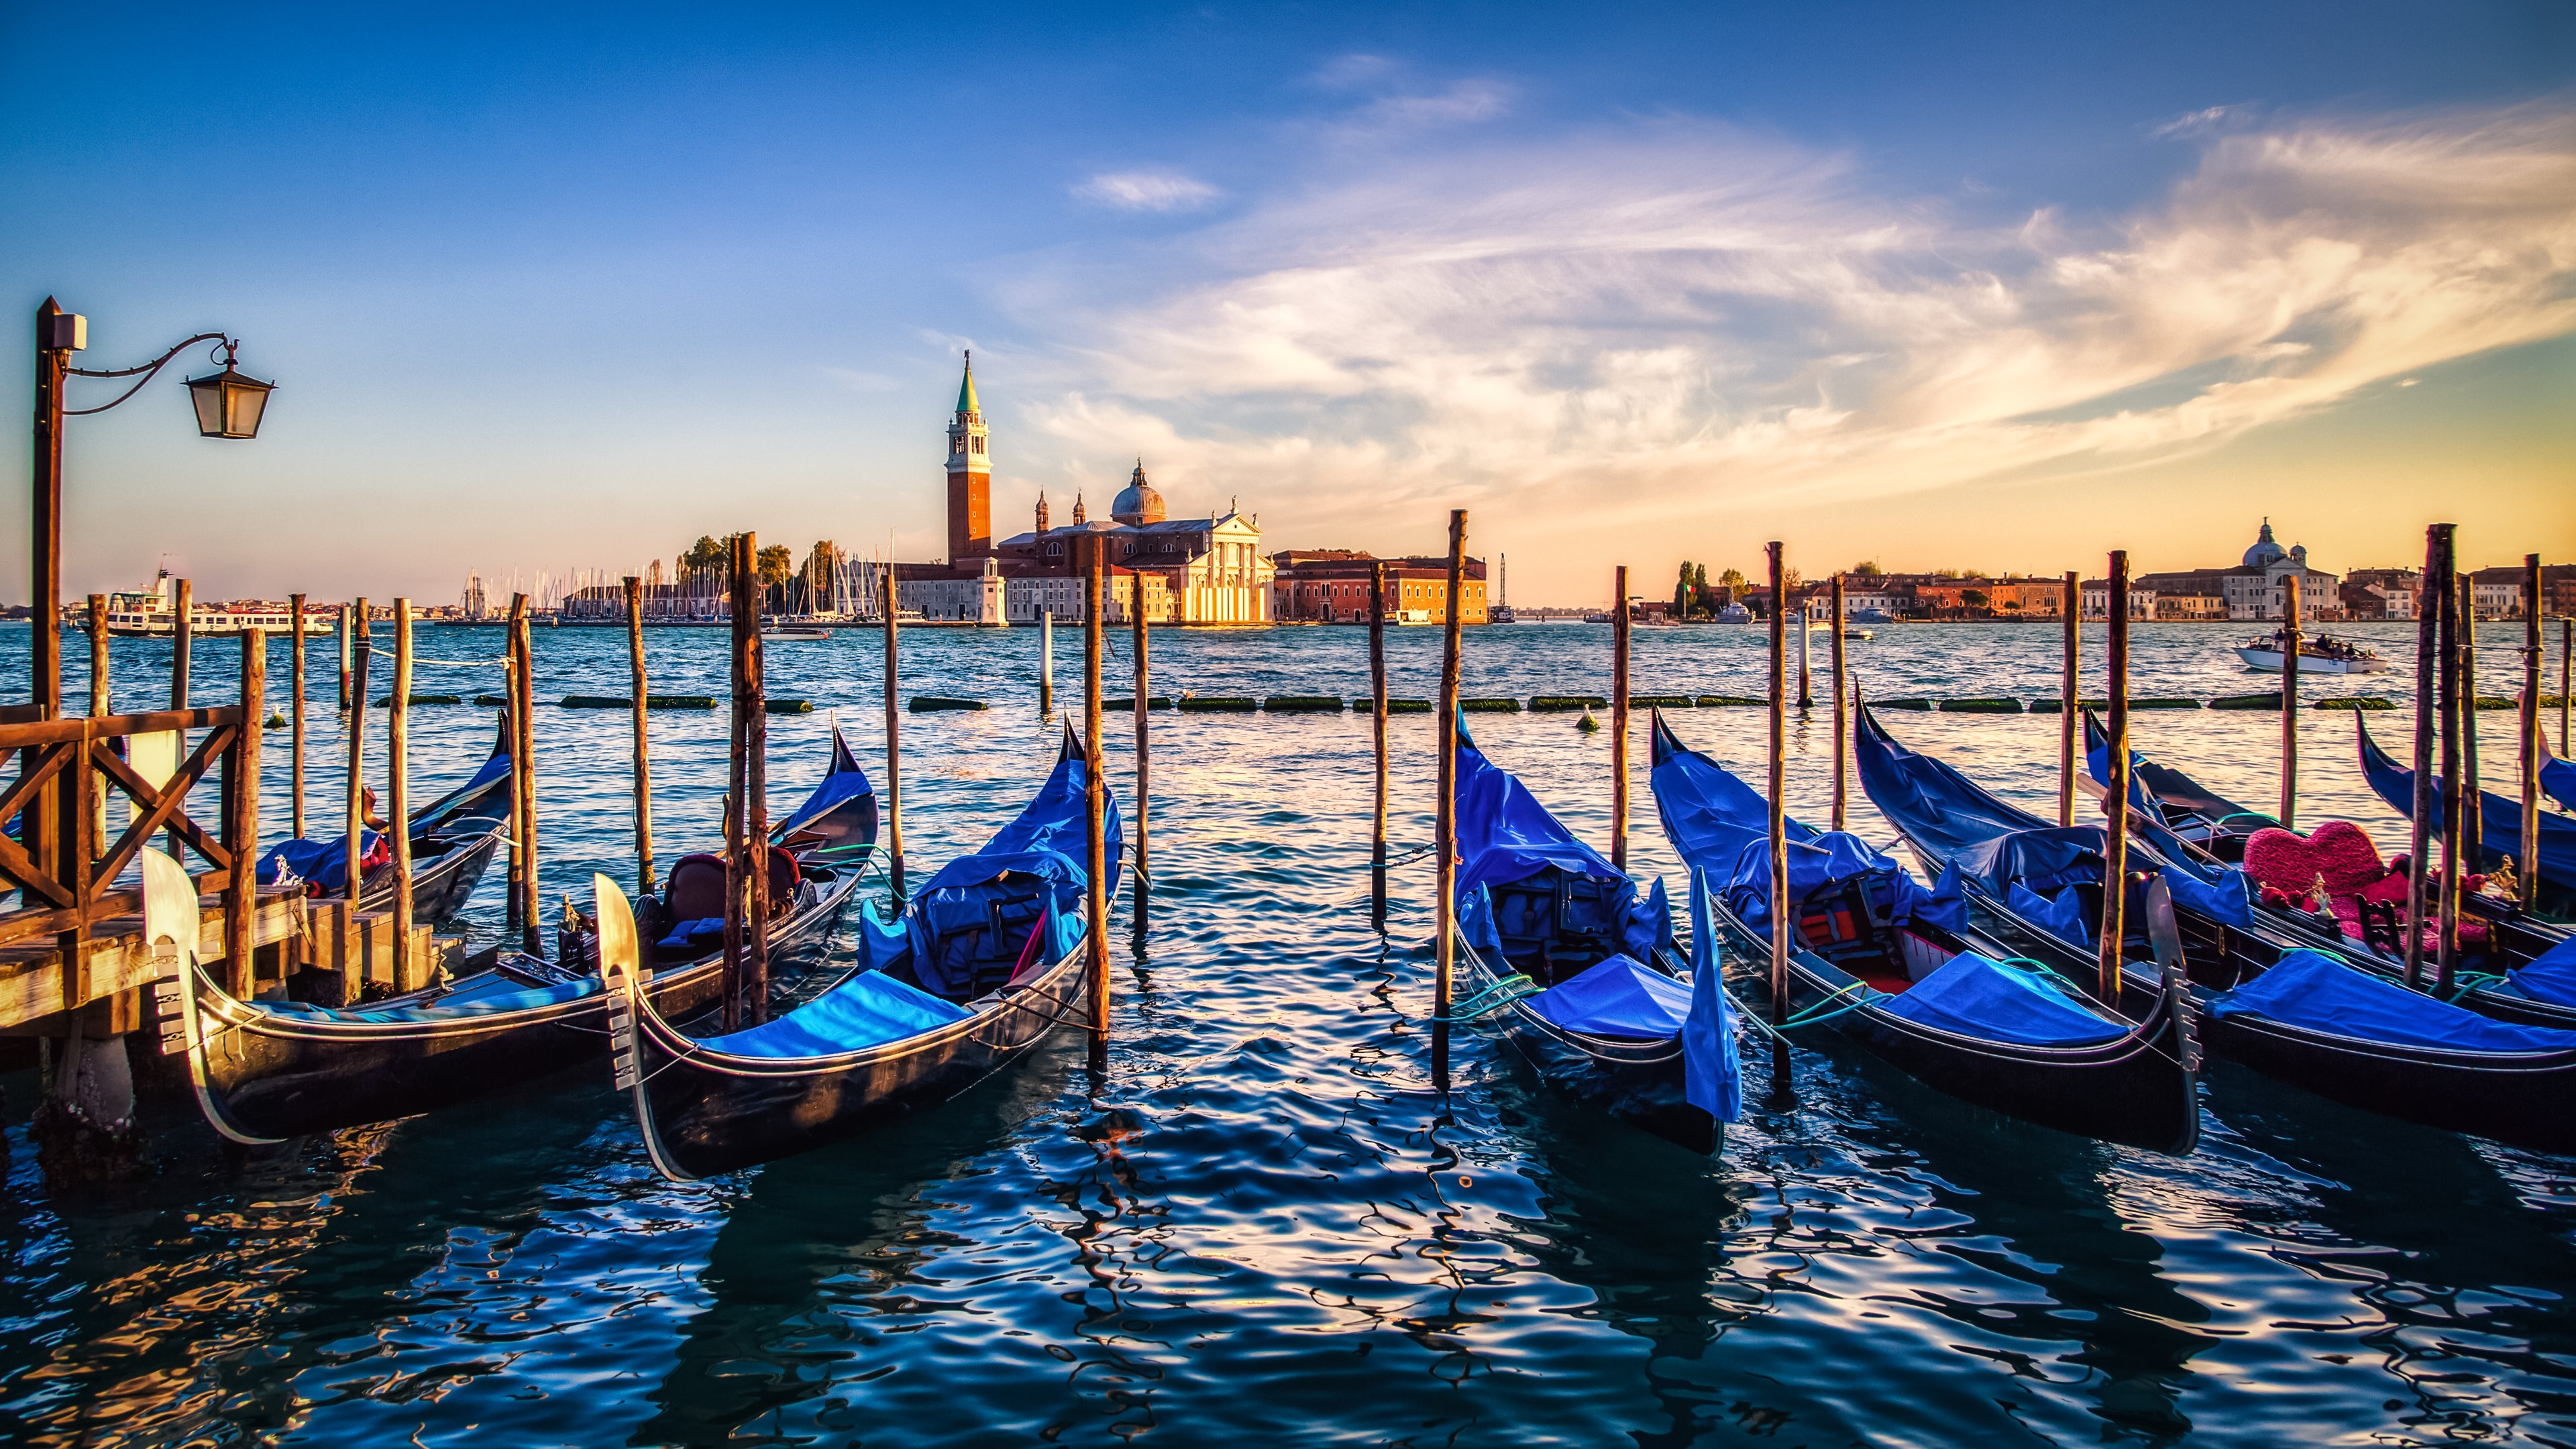 Venice Wallpapers and Background Images   stmednet 3840x2160